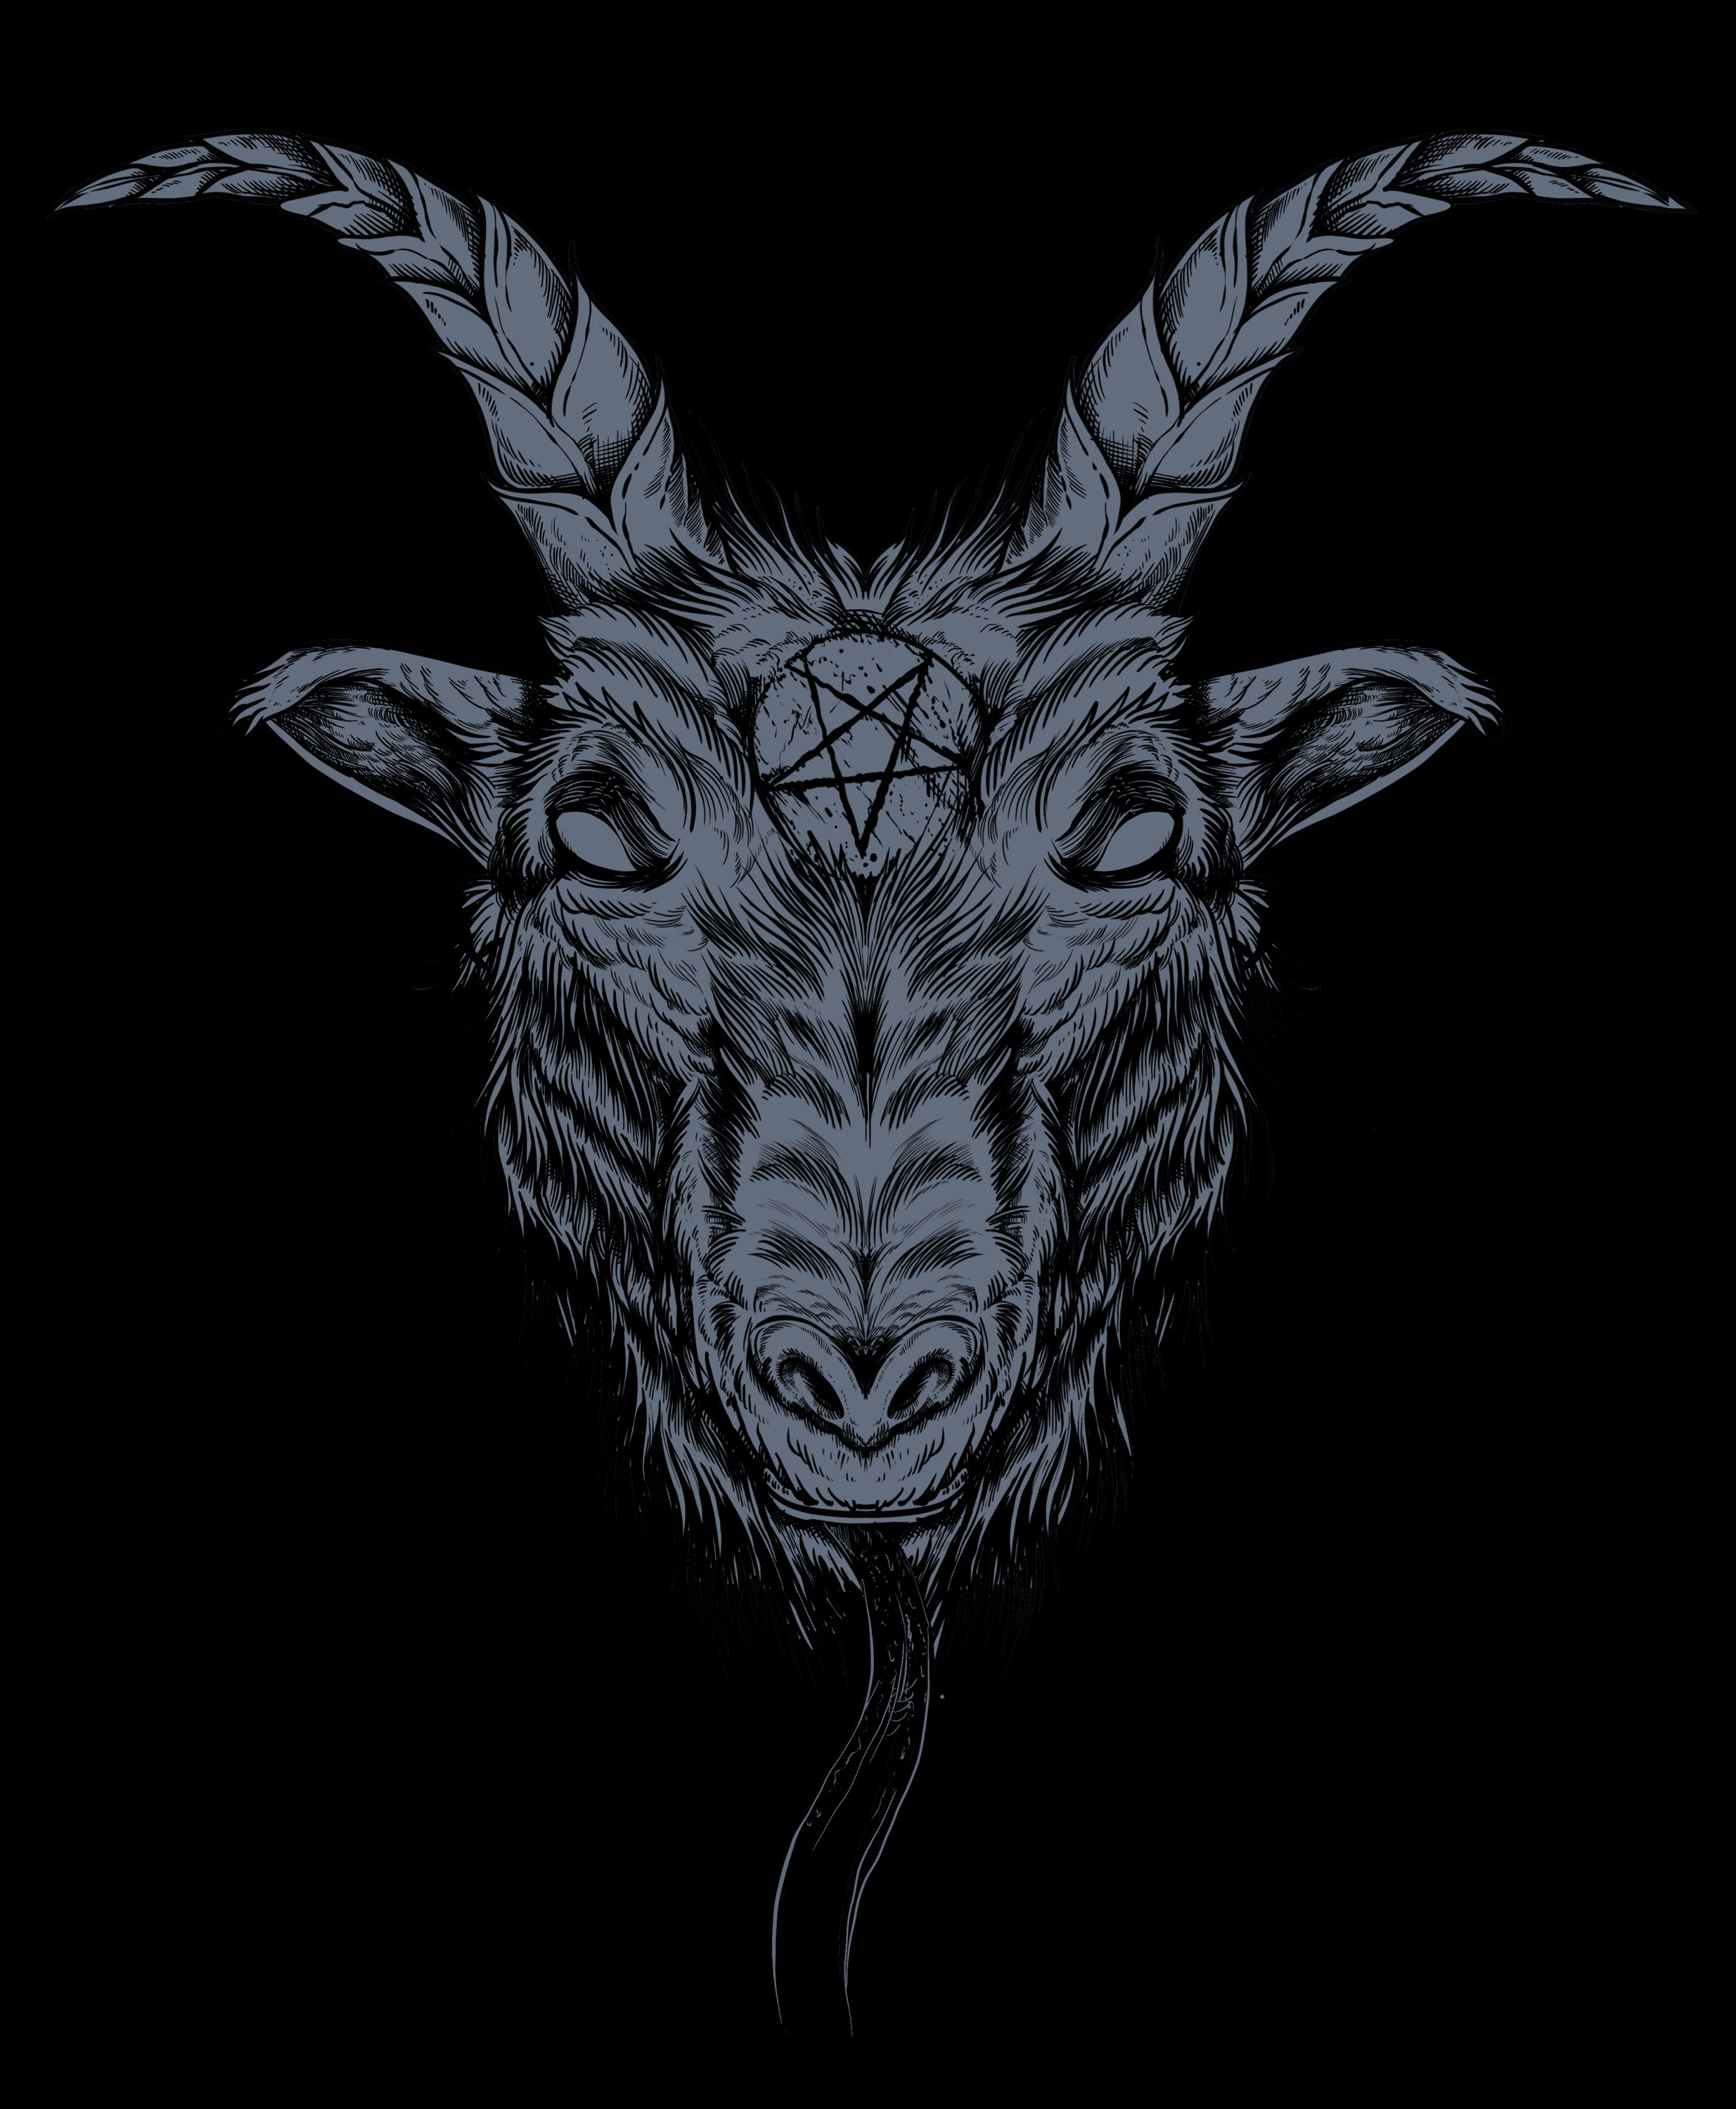 satan Goat - designed by Giovanni Tamponi illustrations